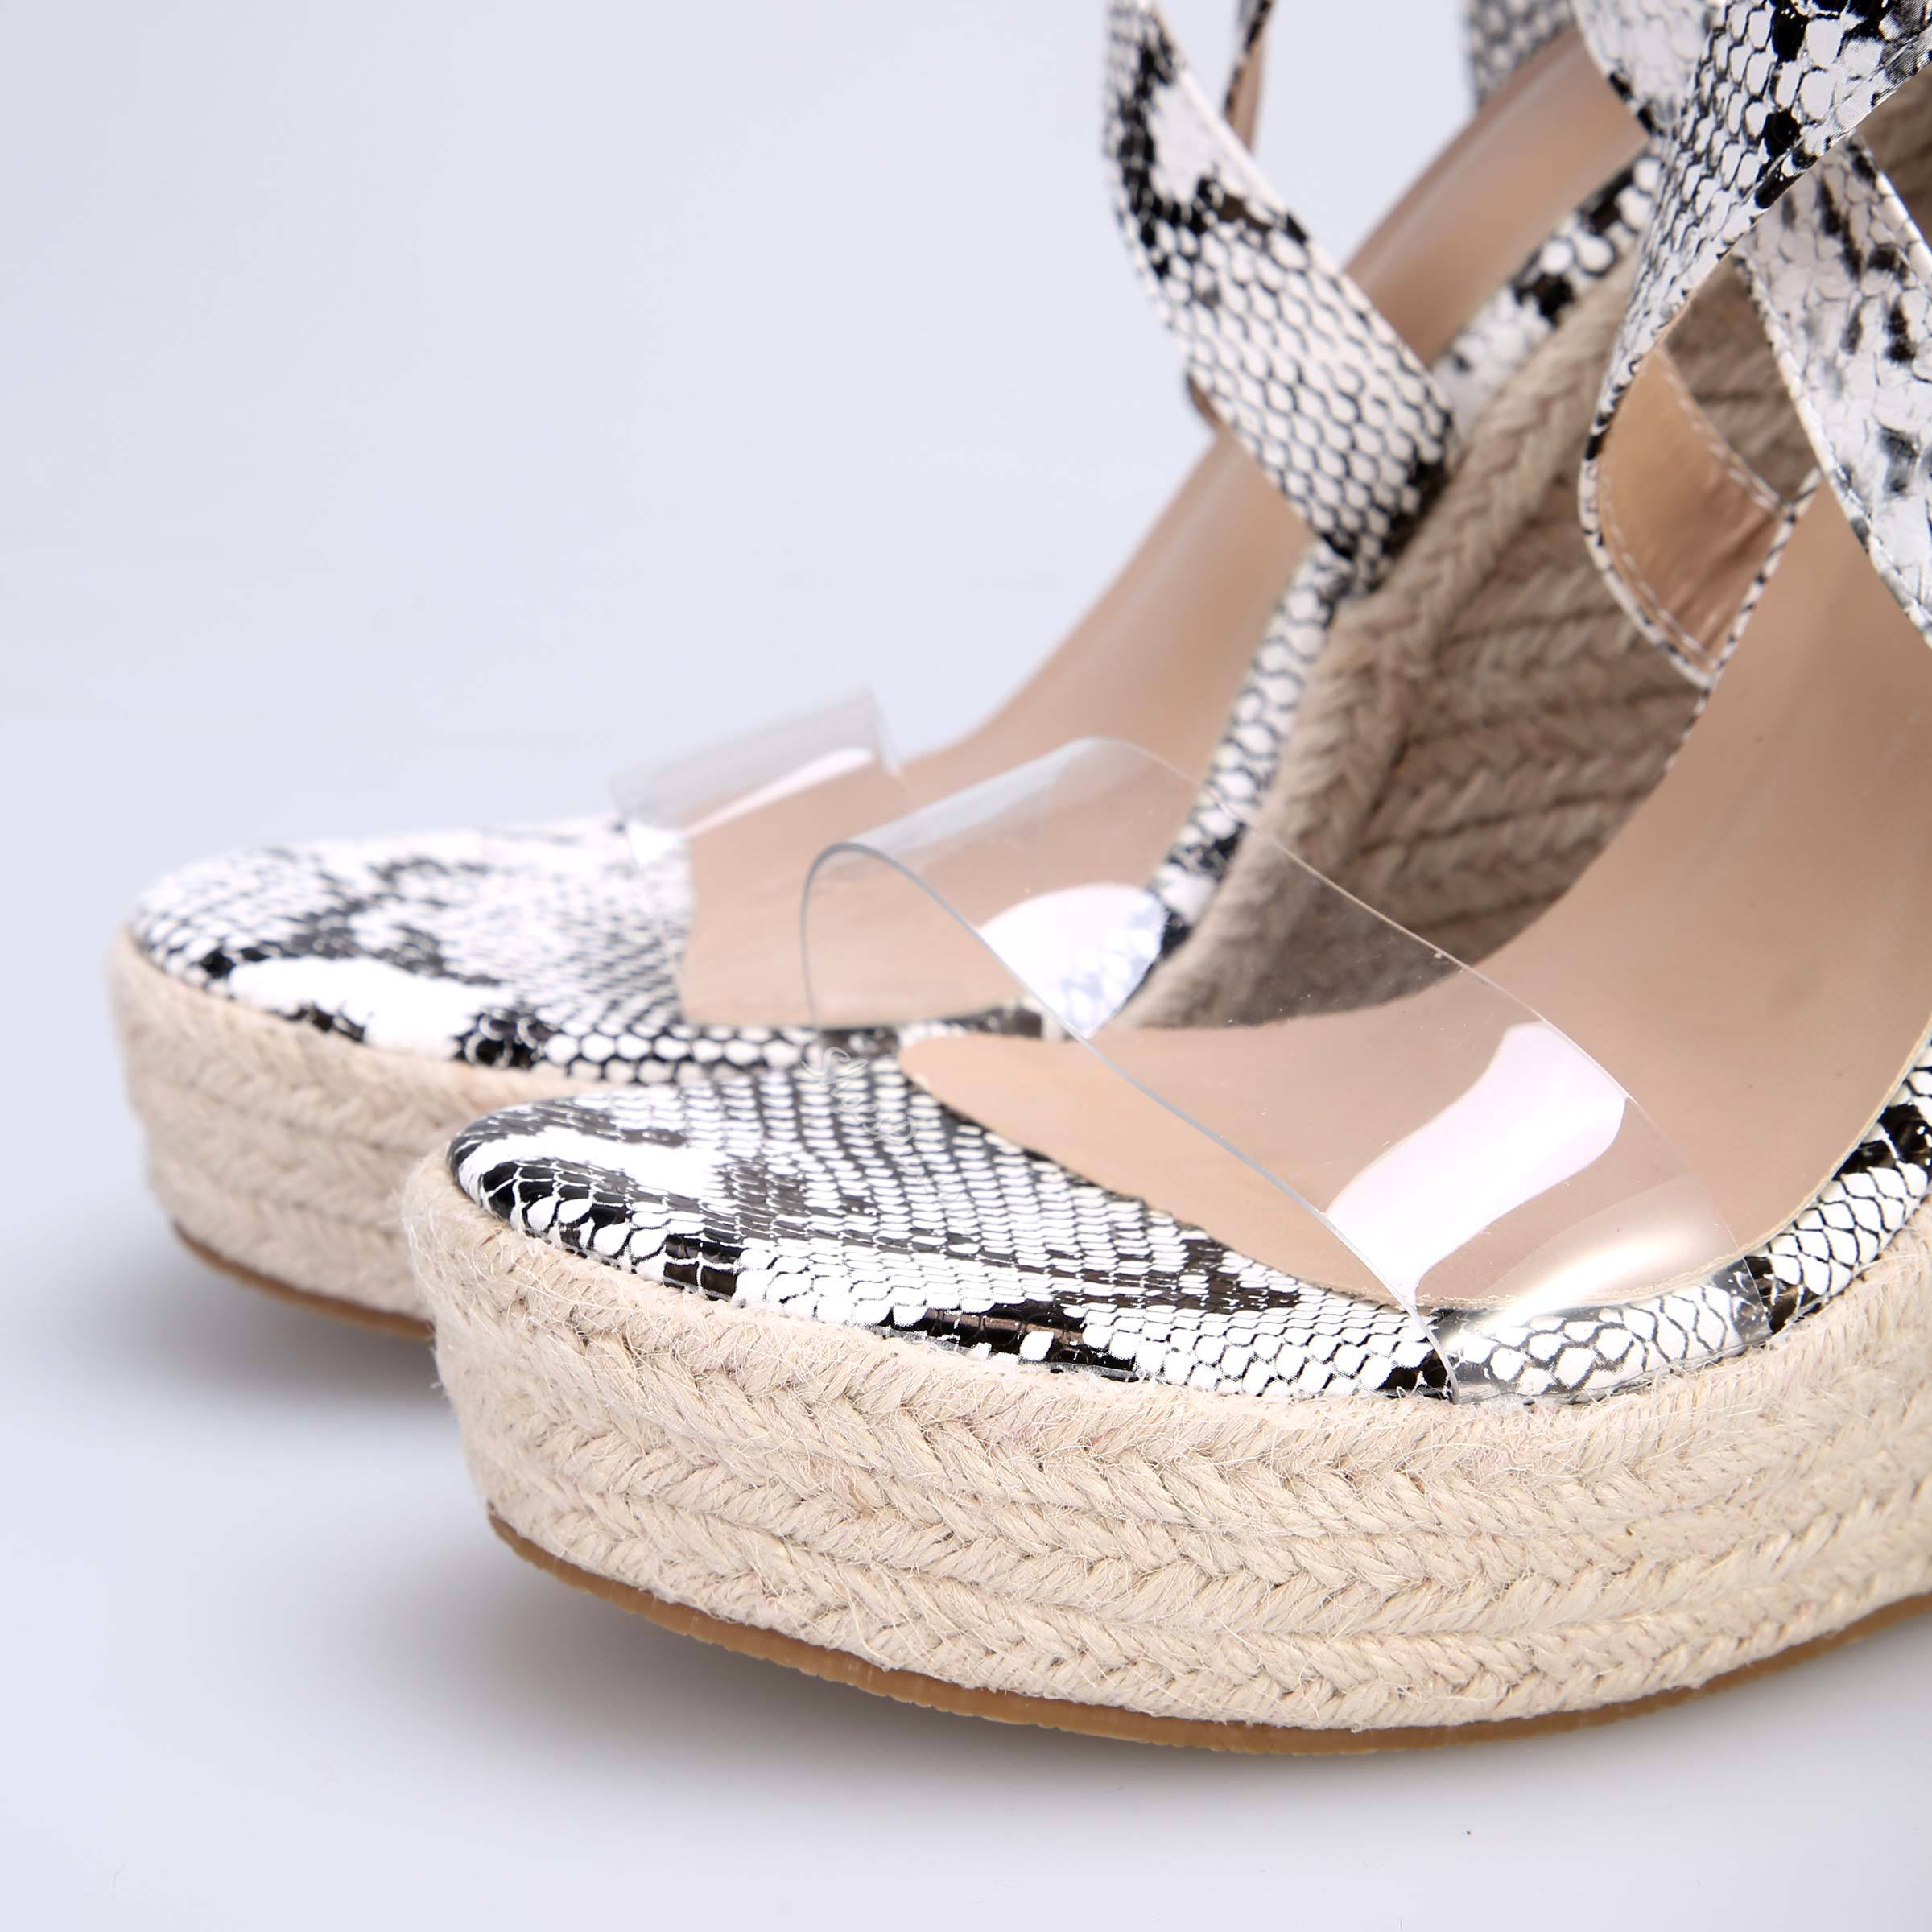 Shoespie Snake Print Buckle Wedge Heel Clear Sandals